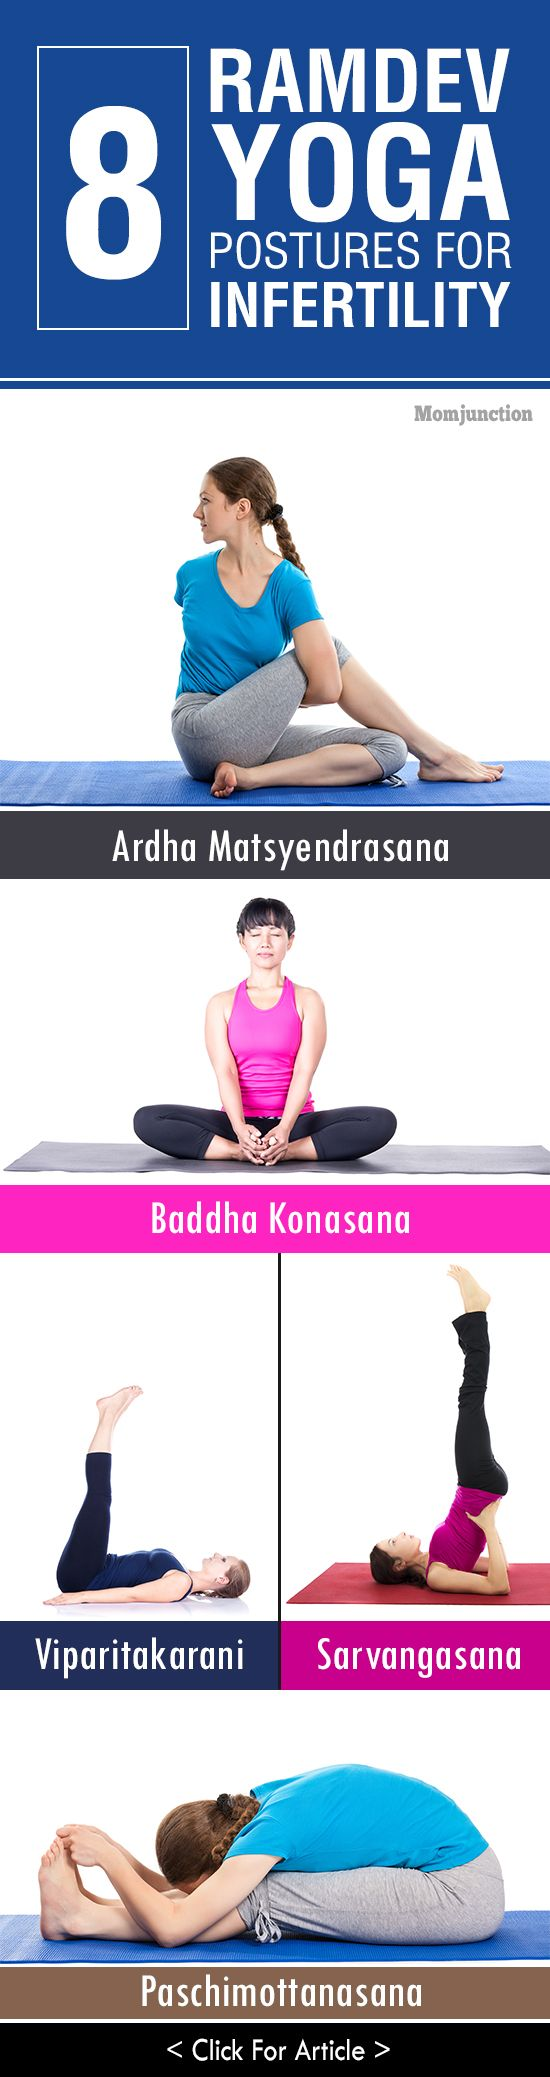 8 Effective Baba Ramdev #Yoga Postures For Infertility: Here are some yoga poses that can work wonders to boost your fertility